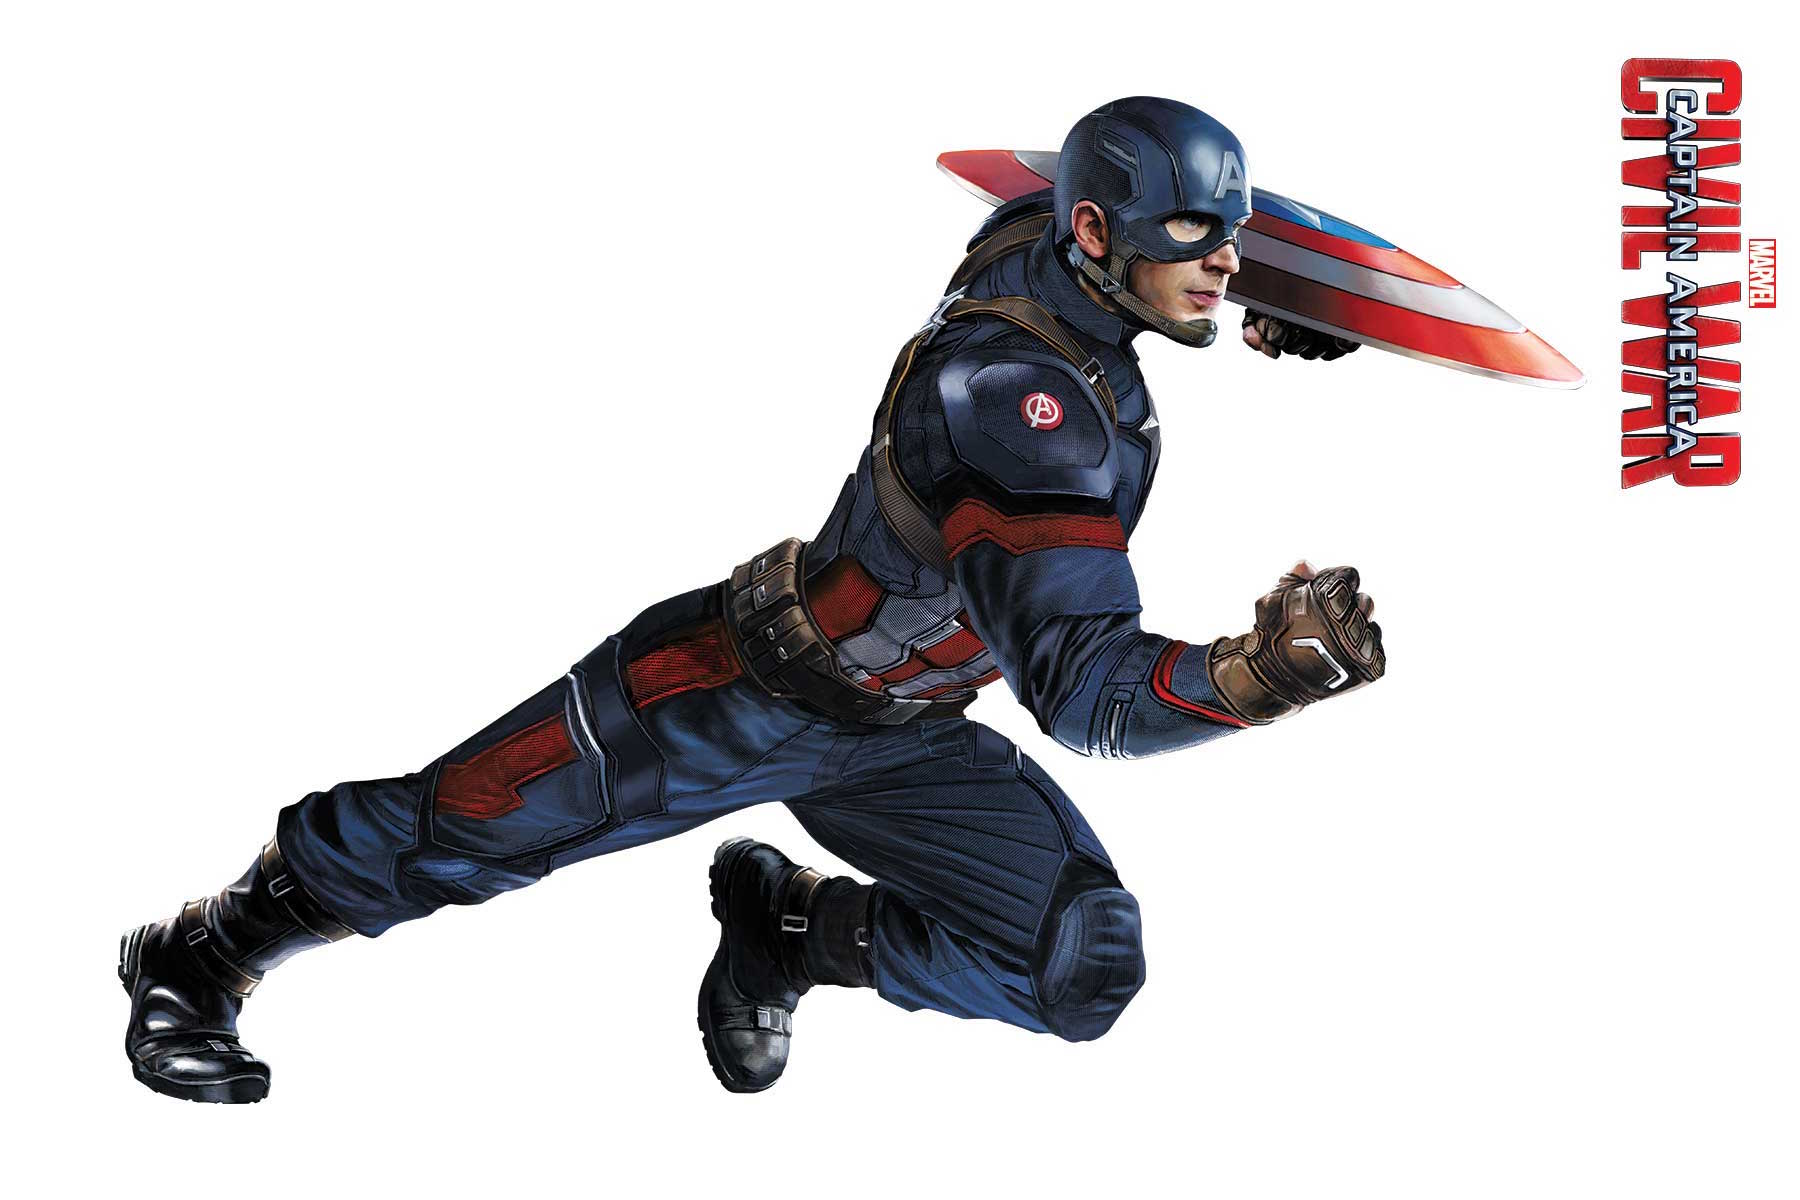 captain-america-civil-war-artwork-captain-america